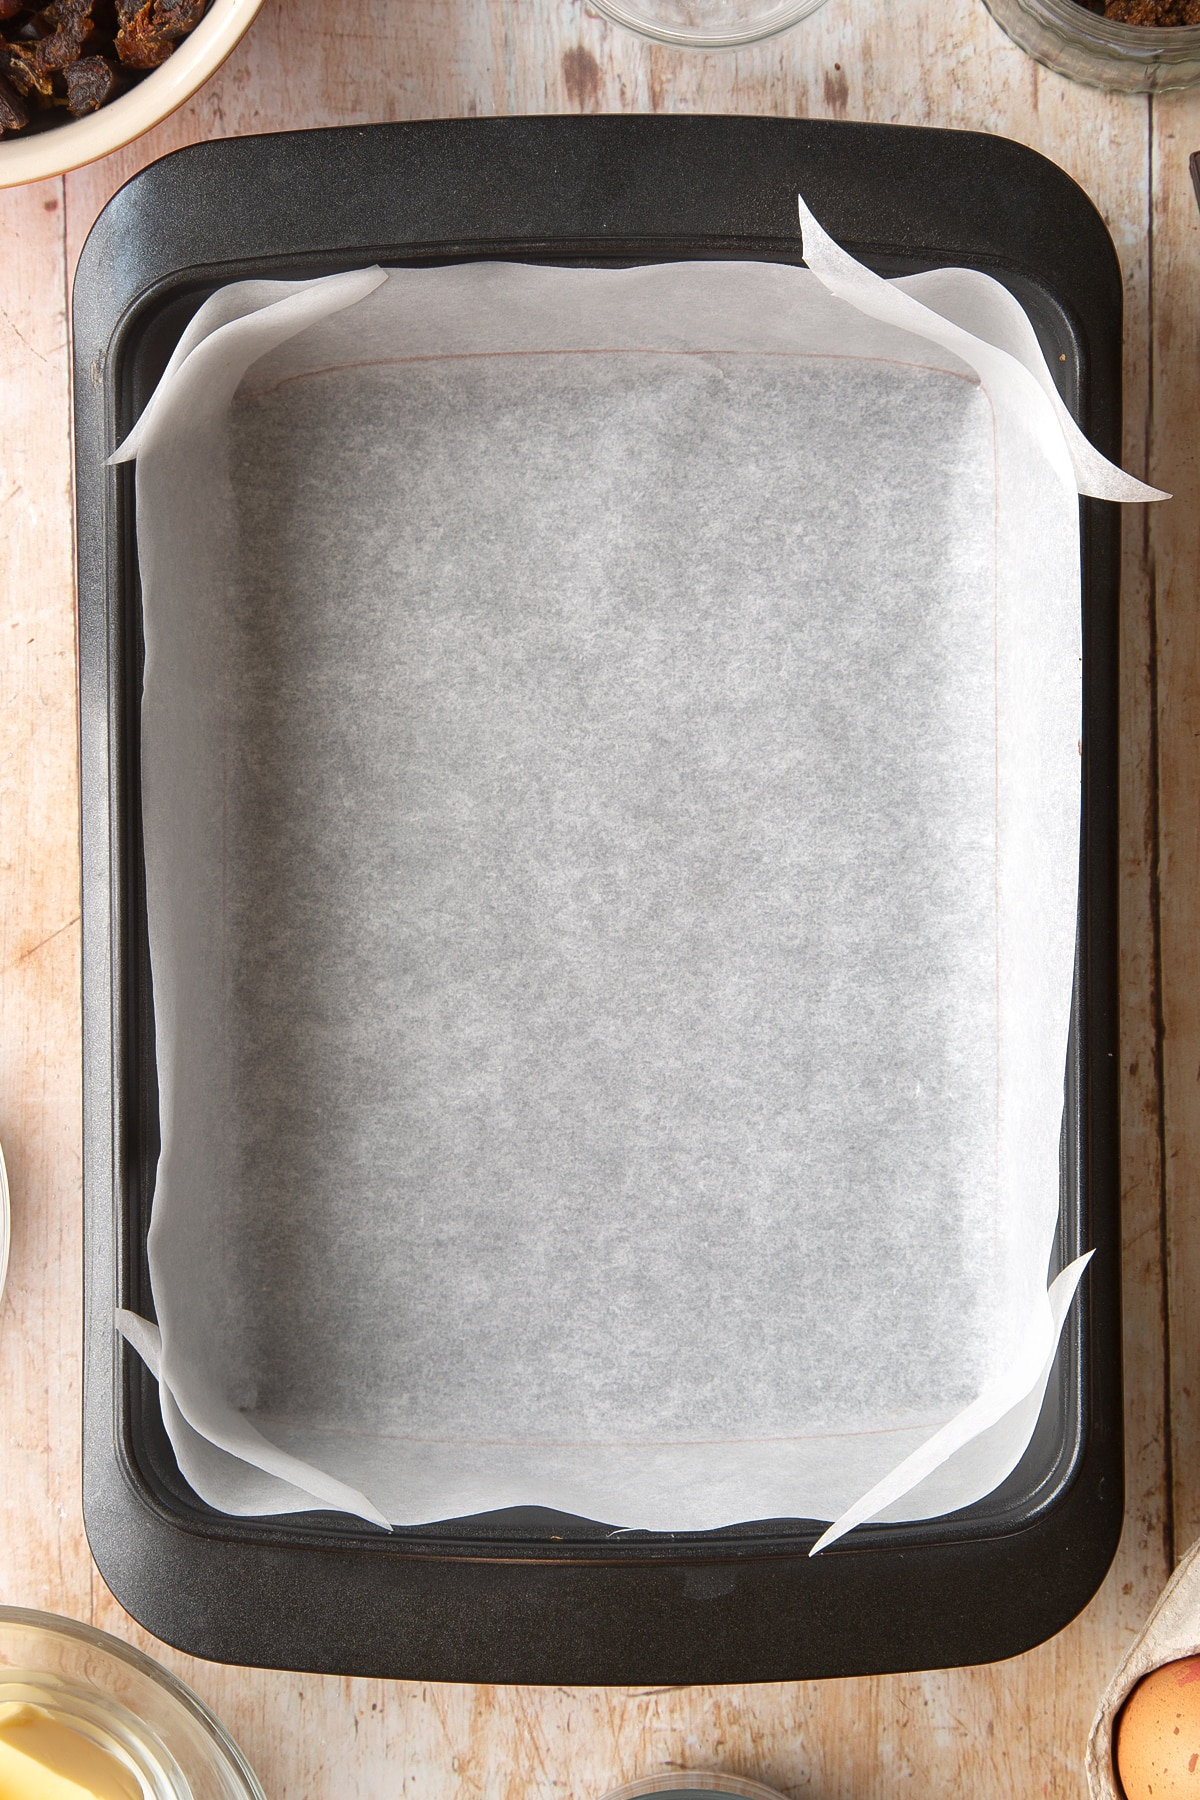 A rectangular tin lined with baking paper. Ingredients to make whole grain brownies surround the tin.